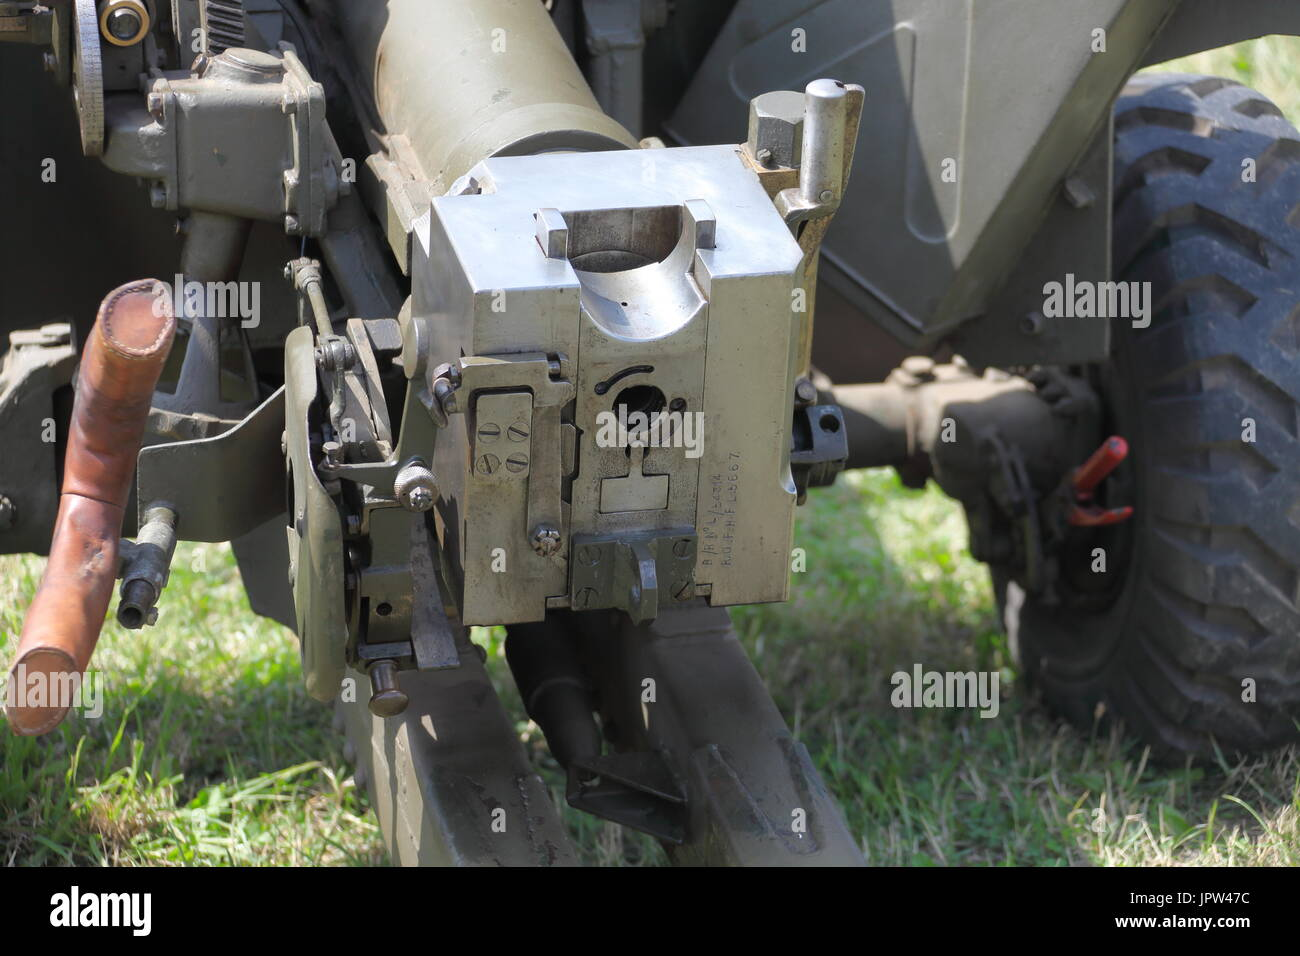 The breech end view of a 17 pounder wartime anti tank gun restored by a private owner and on display at Beltring 2017 War and Peace show in Kent. - Stock Image